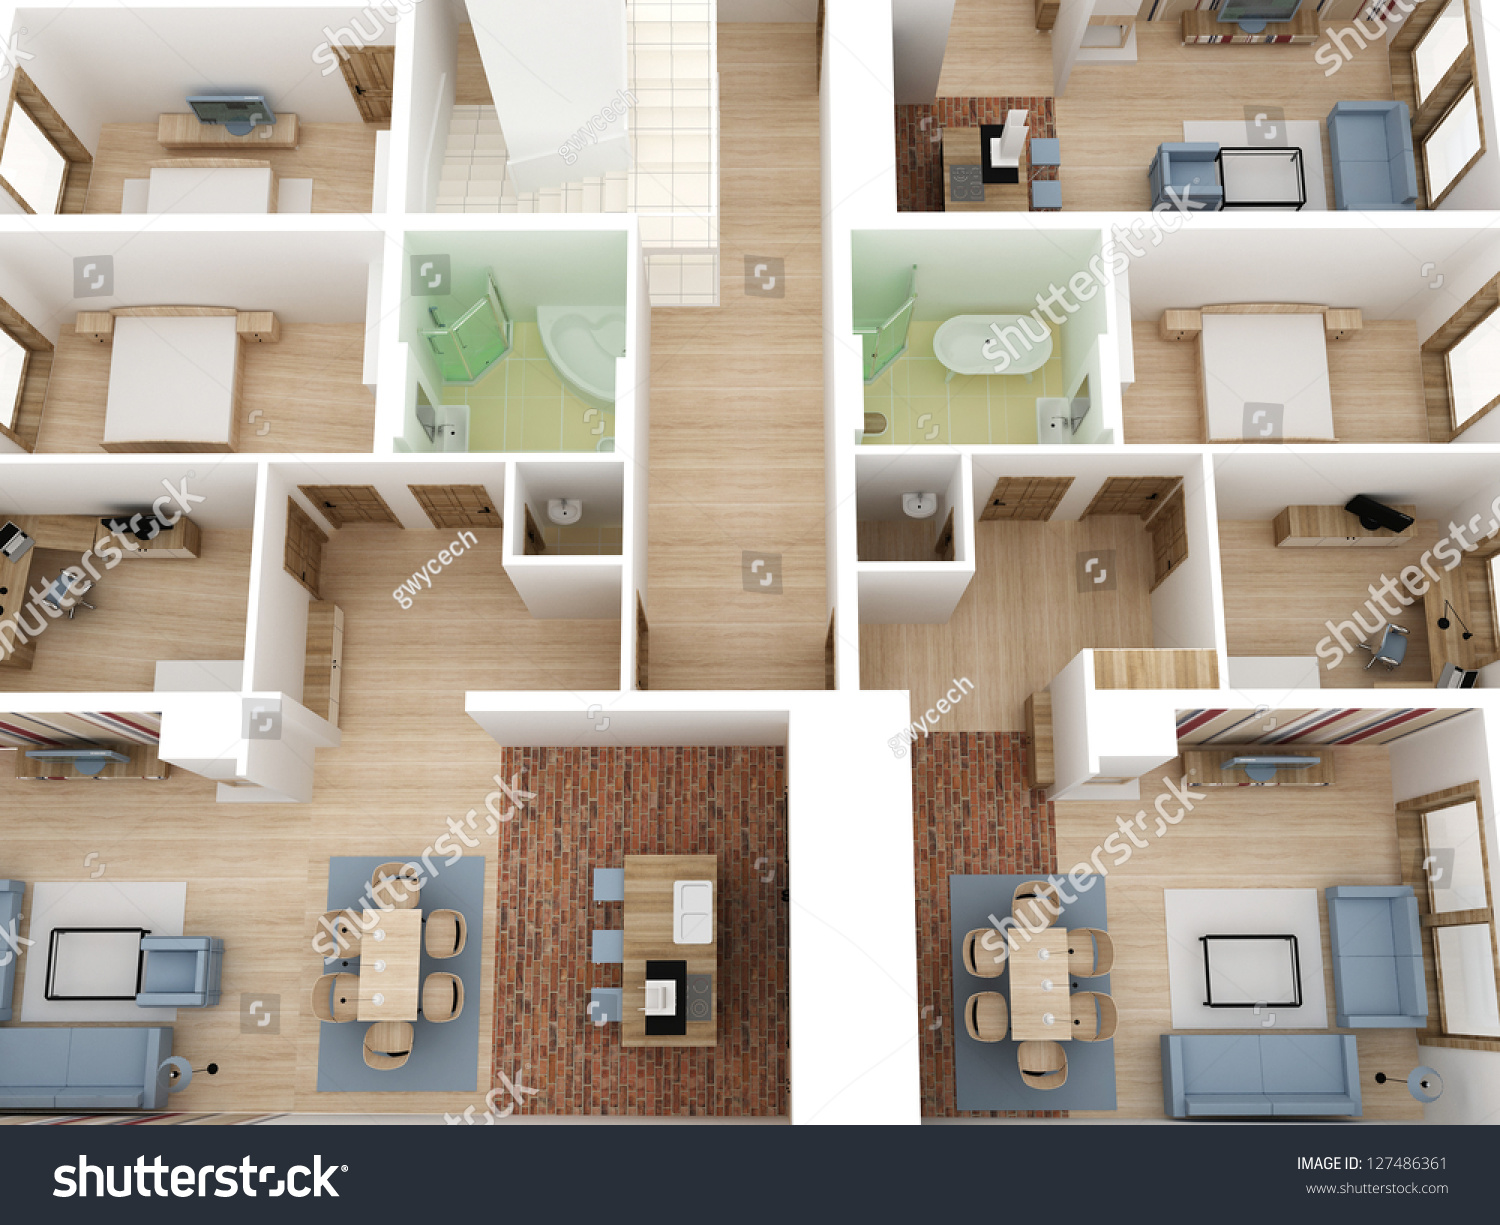 Apartments Level Top View Building Design Stock Illustration